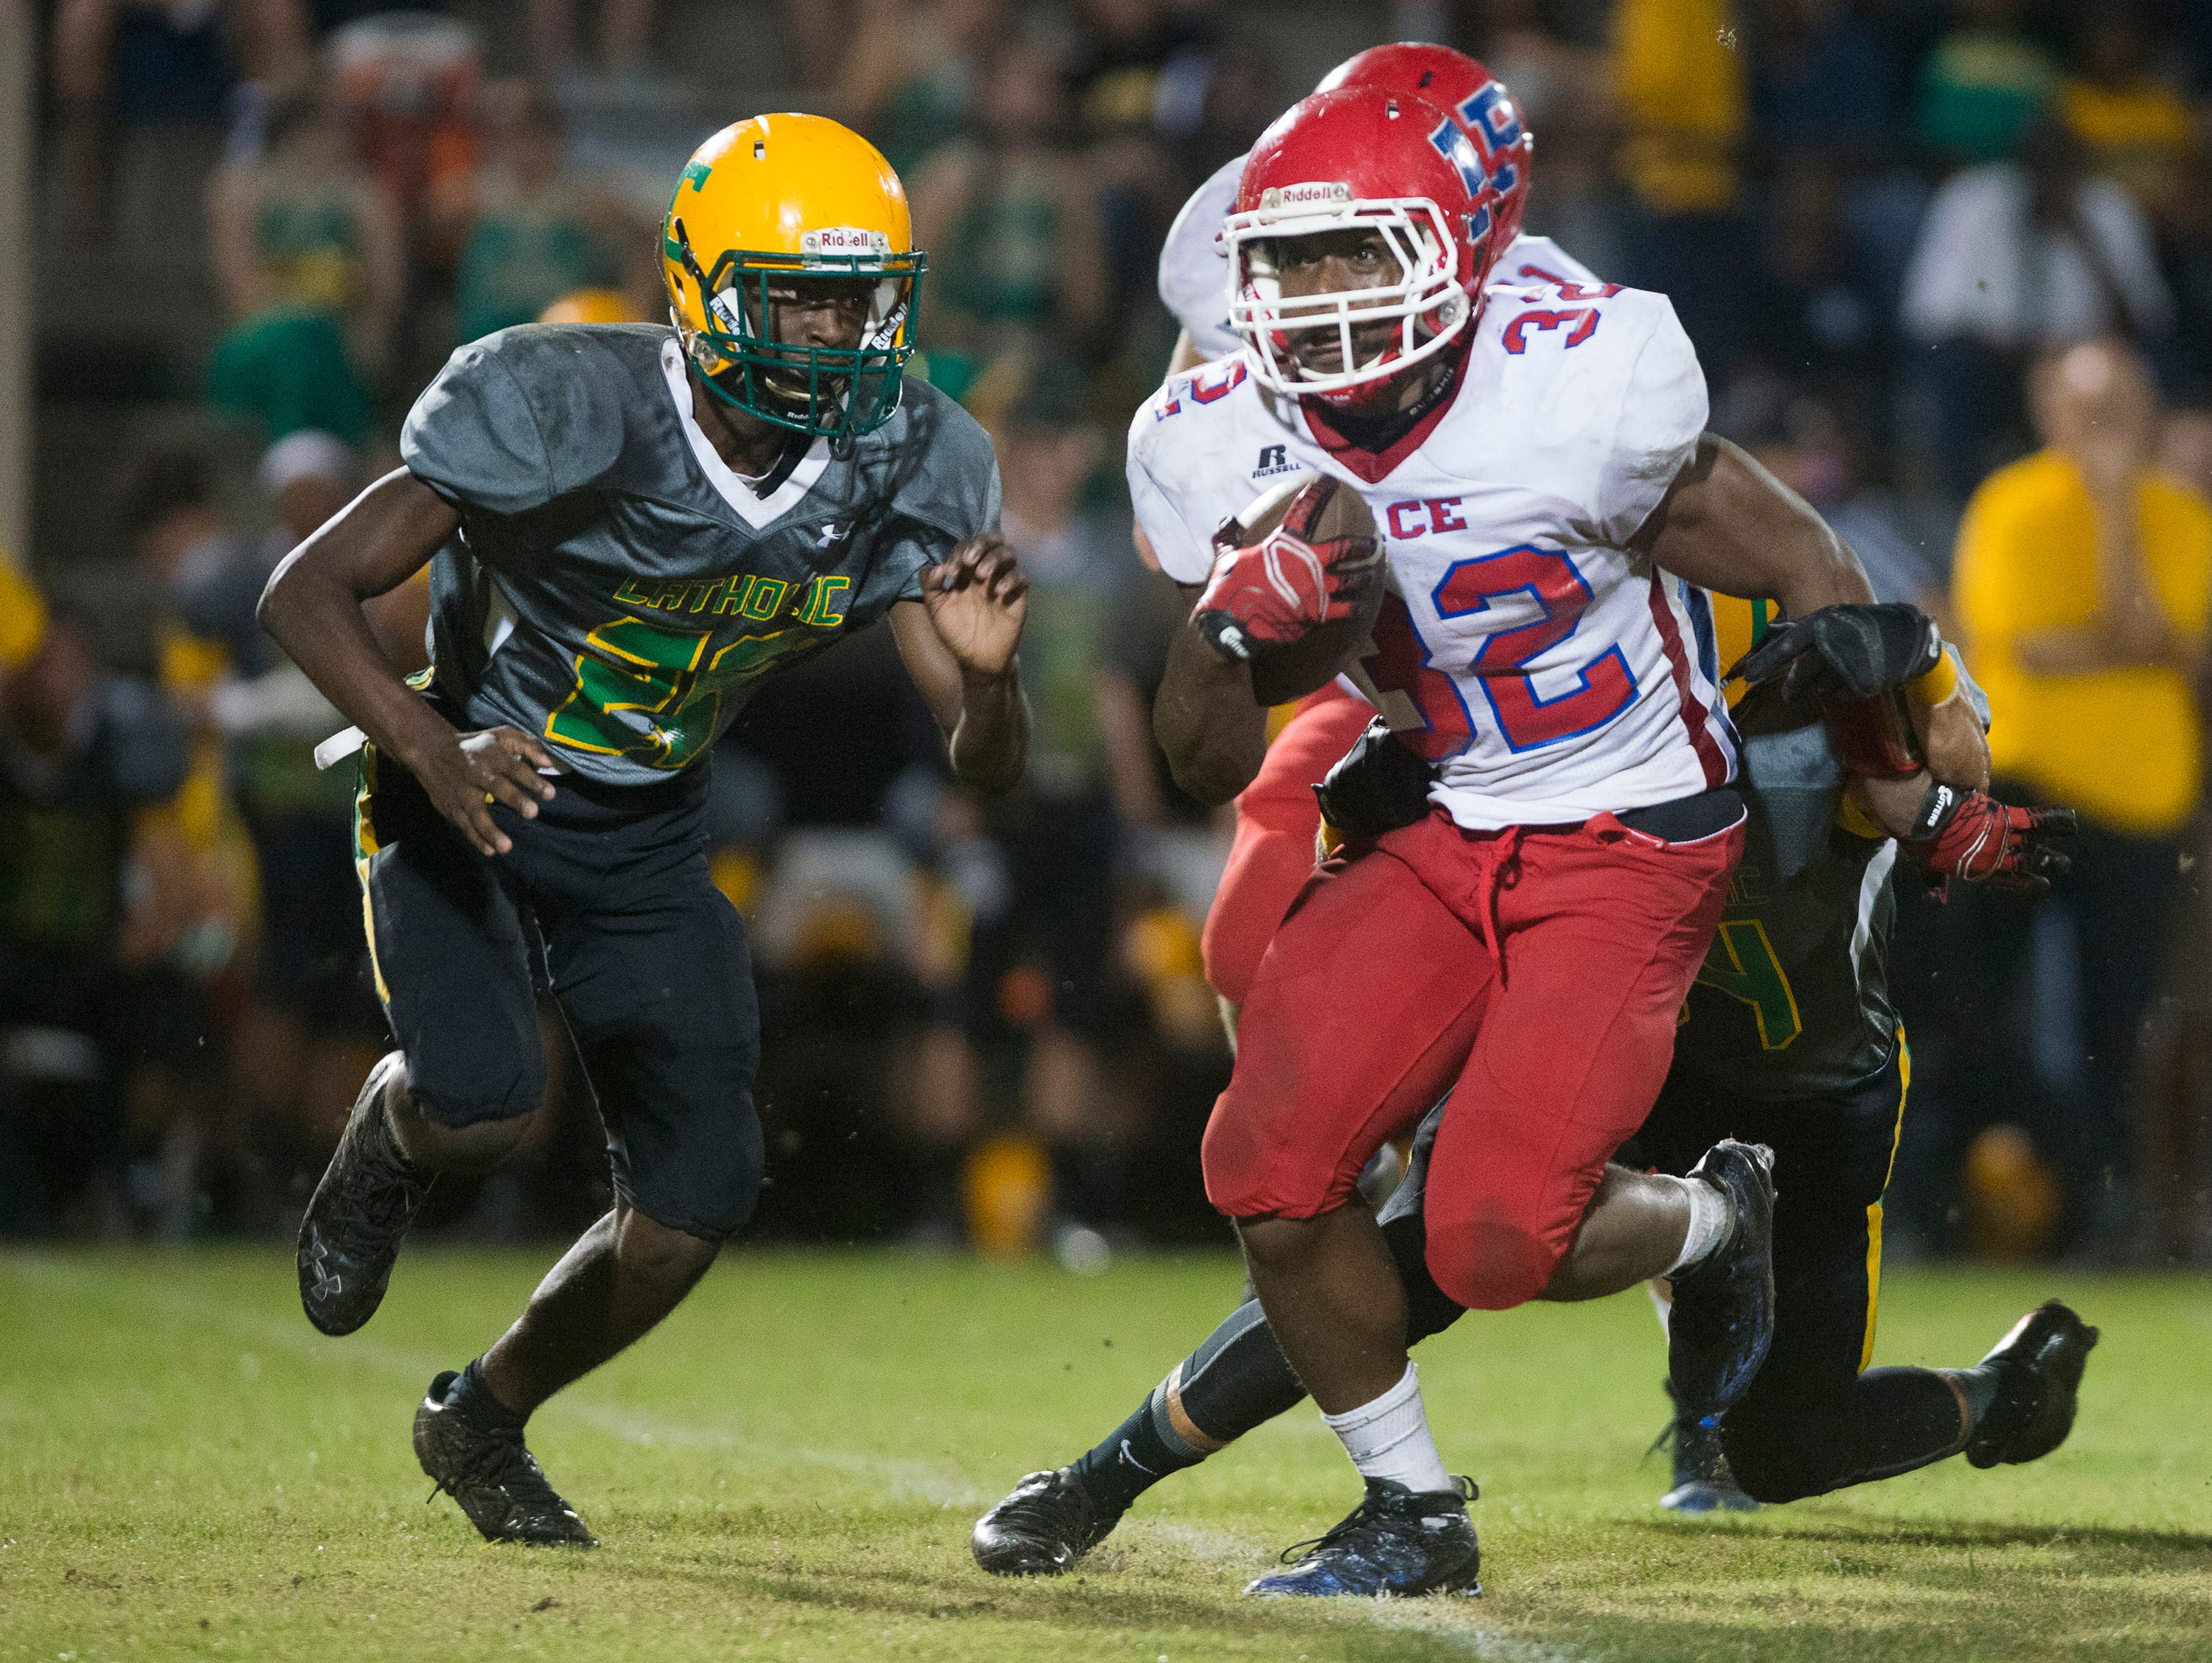 Pace High's running back, Anthony Johnson, (No. 32) gets wrapped up by Catholic High's Evan Junot, (No. 24) as Bryan Wright, (No. 26) comes in to strip the ball from Johnson during Friday night's final regular season prep football game.